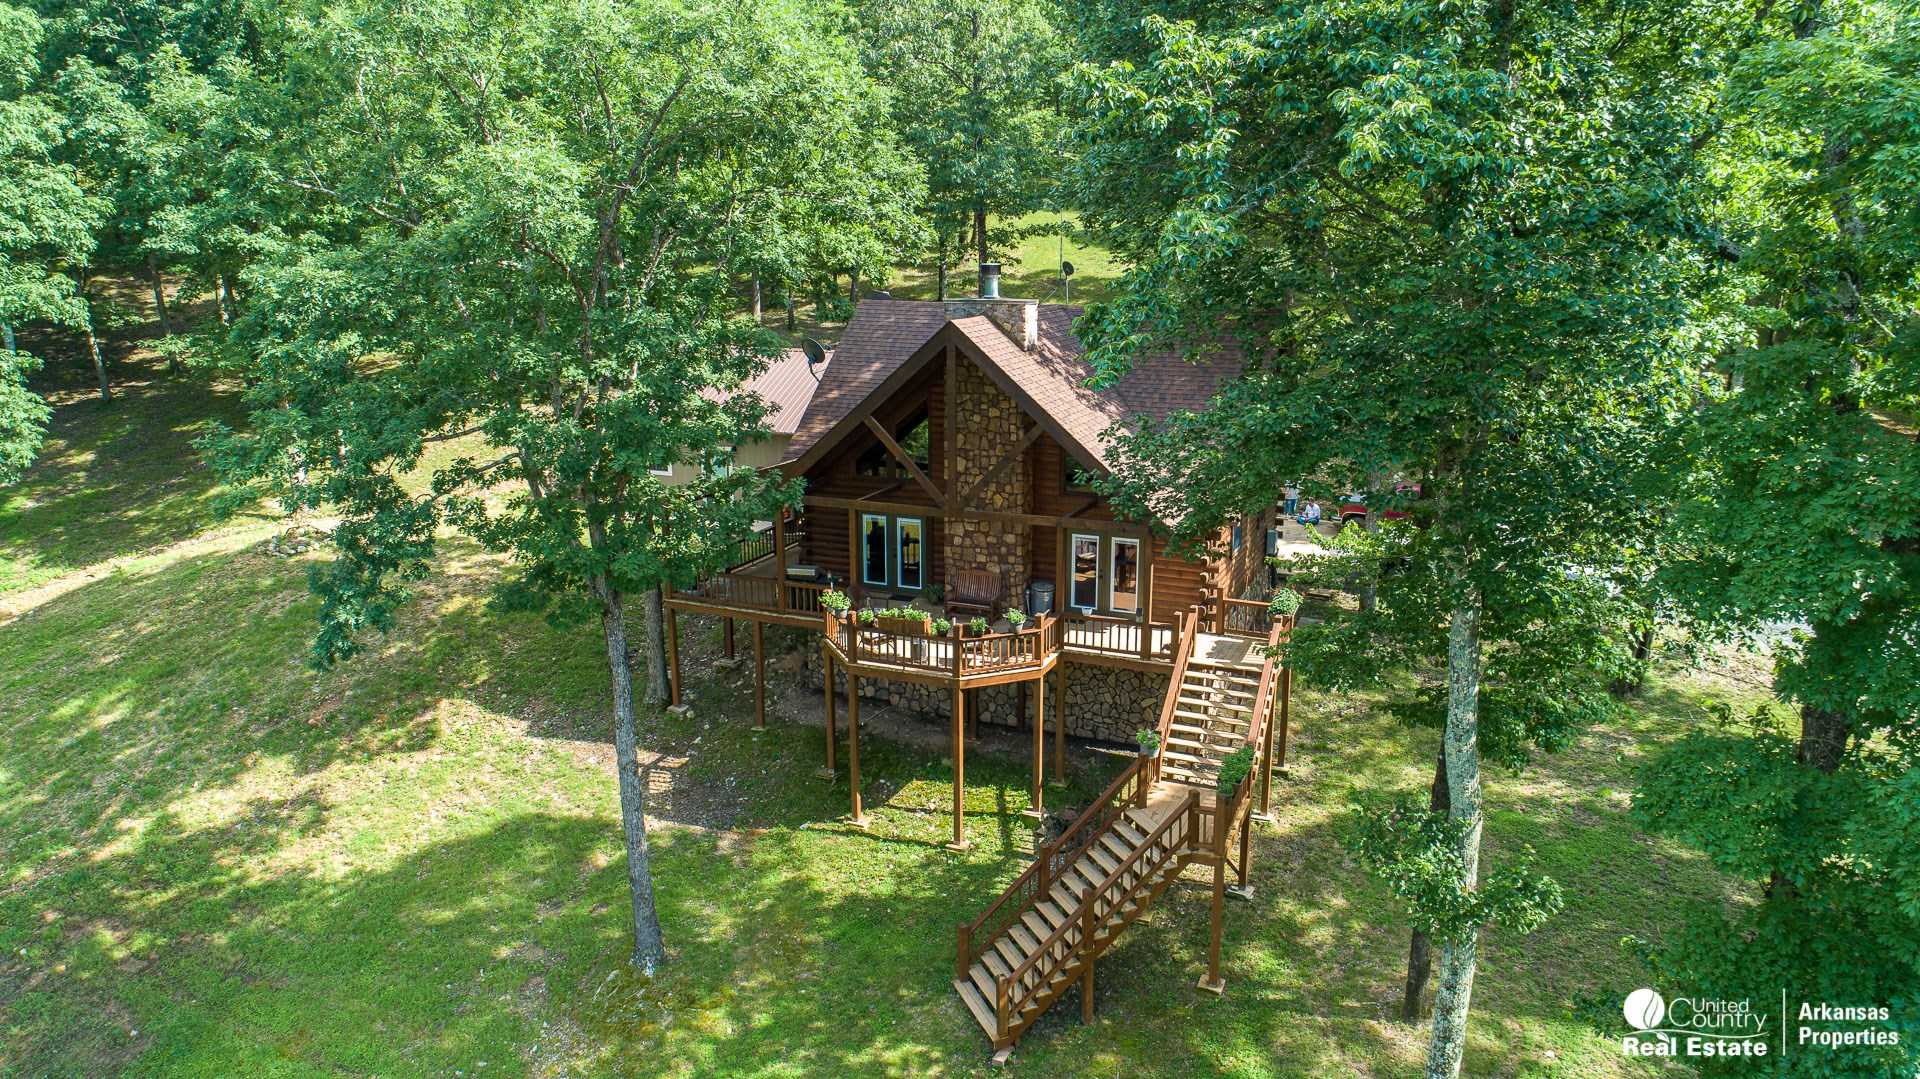 Log Home with acreage for sale in Arkansas